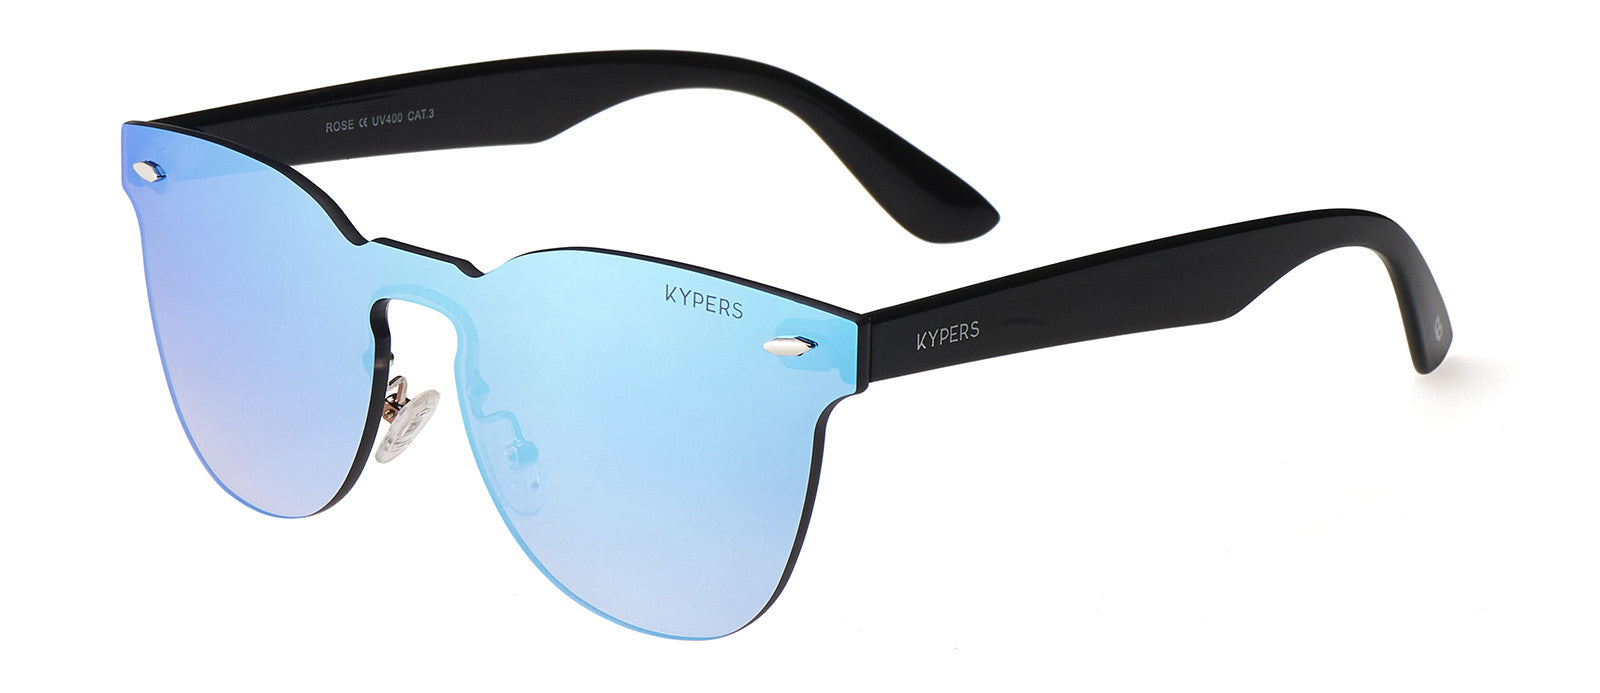 KYPERS sunglasses model ROSE RS007 with black frame and pink mirror lens